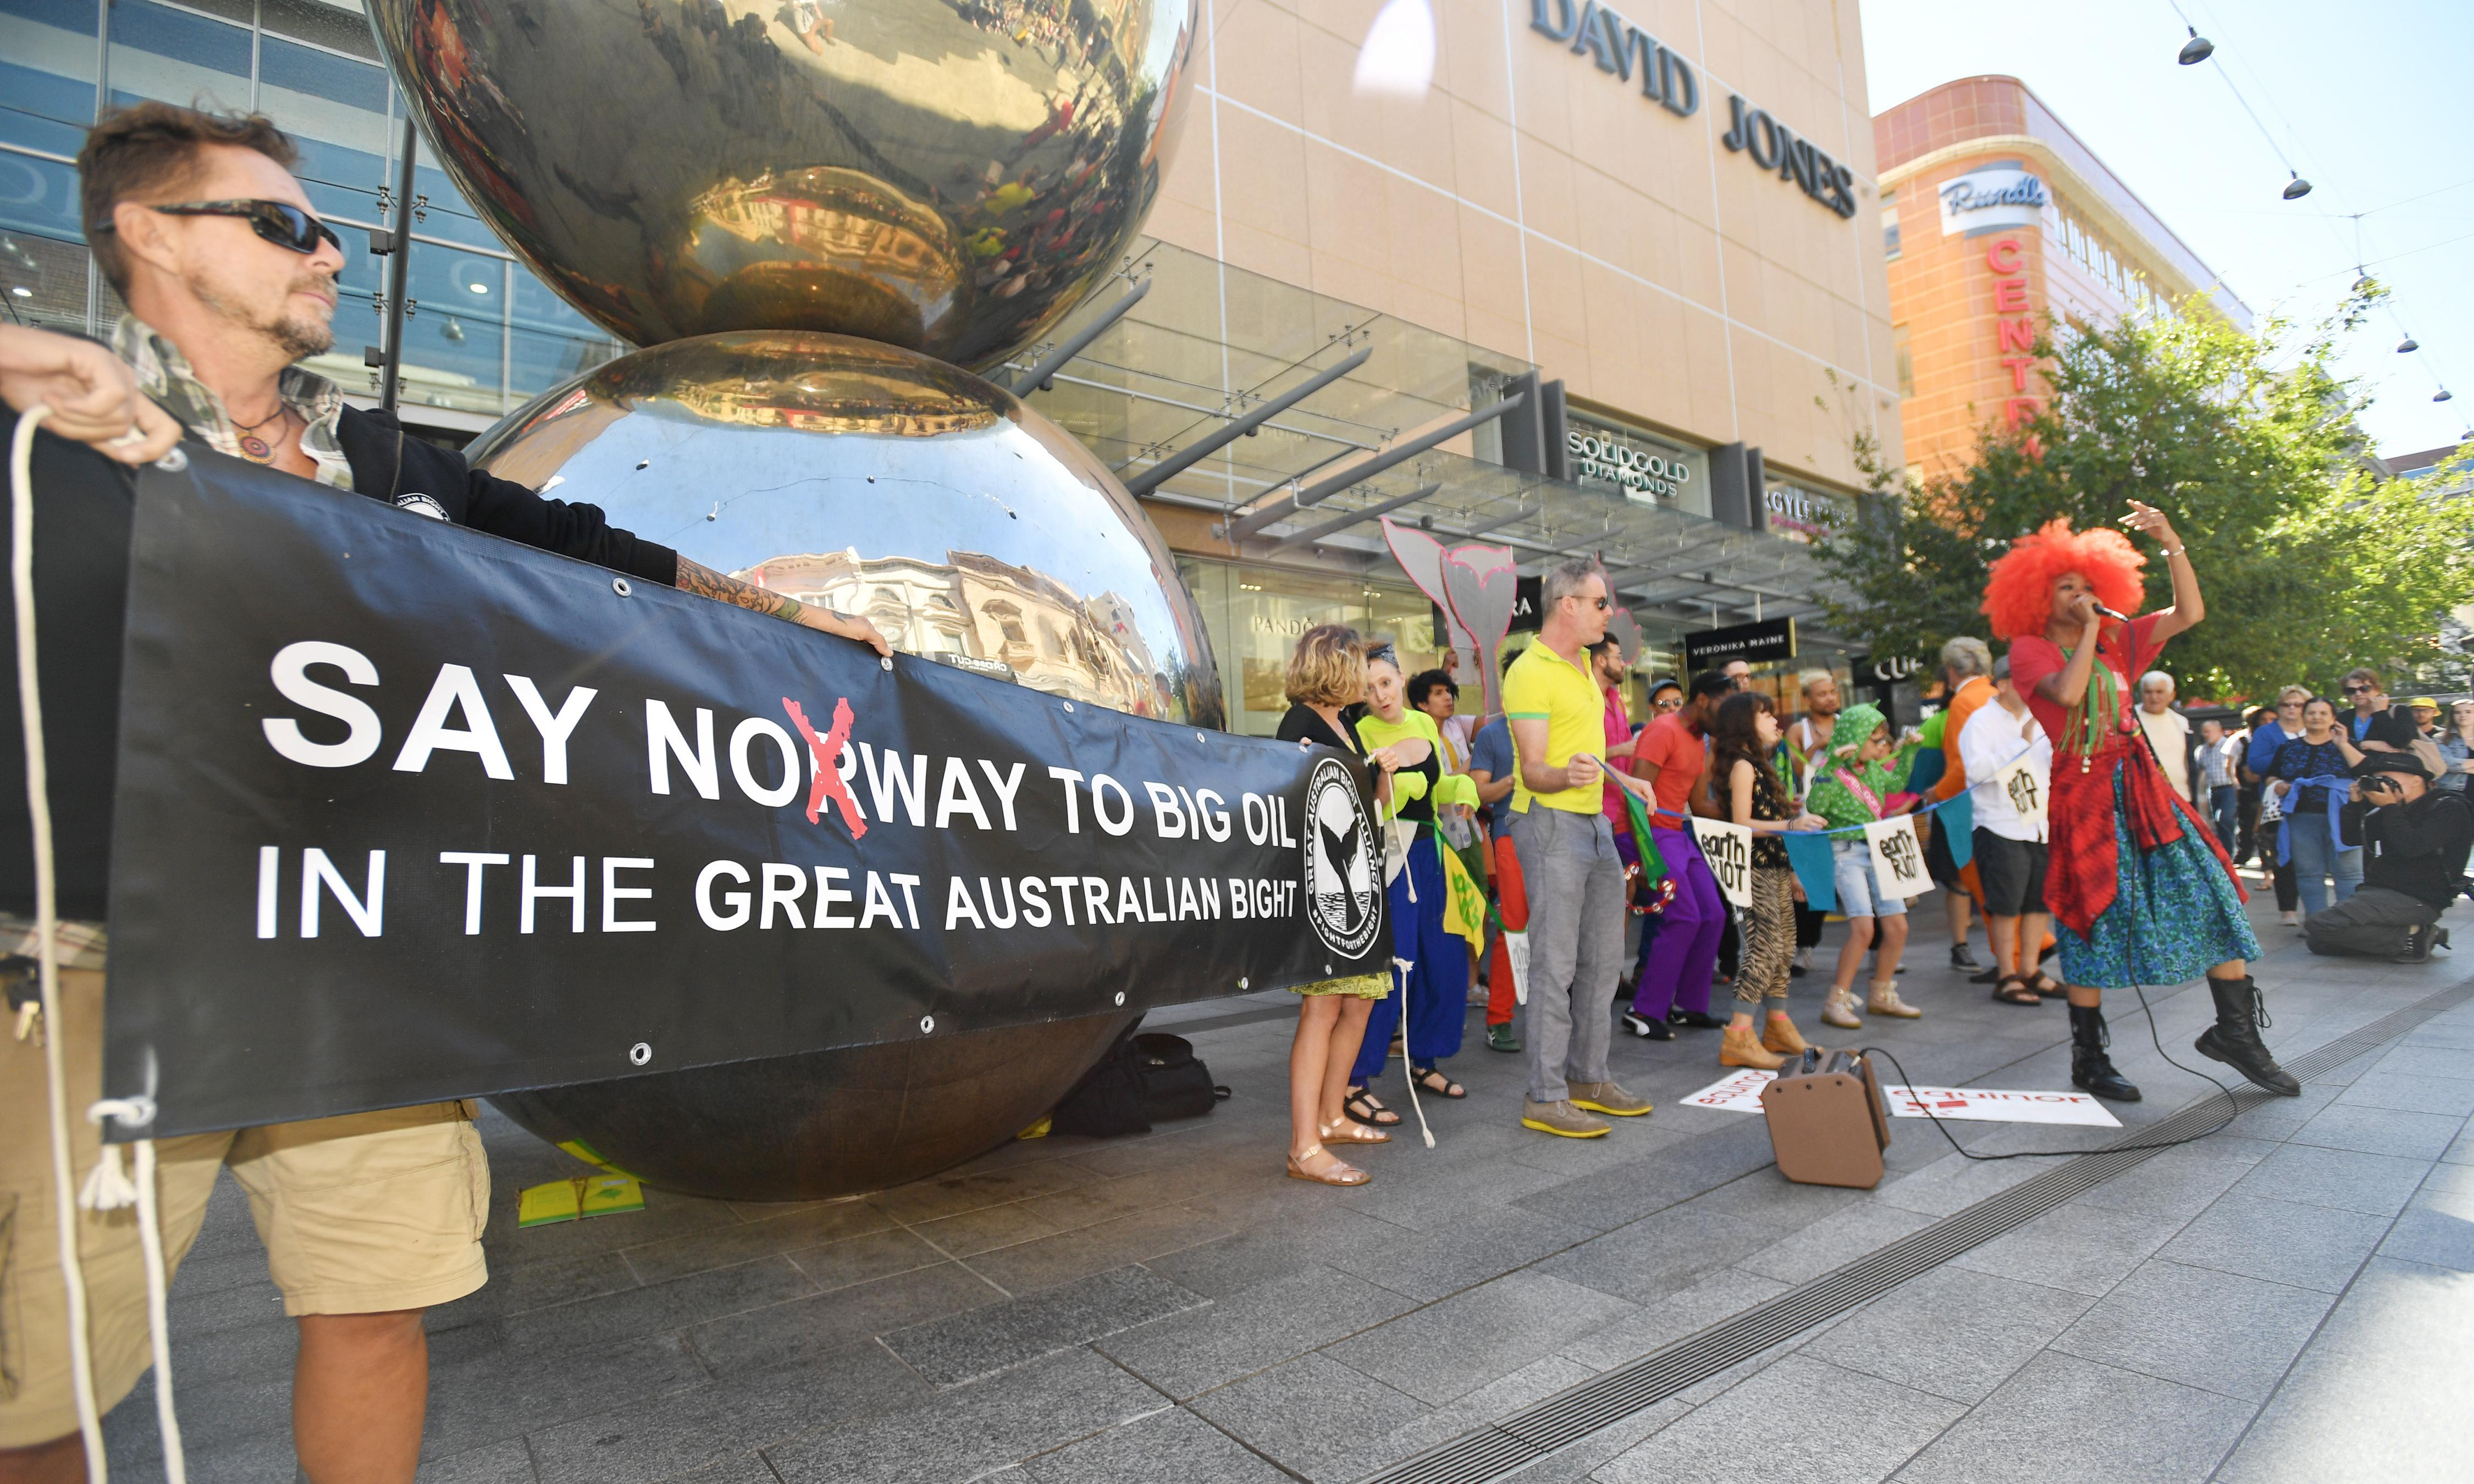 Norway's Equinor must modify environmental plan to drill in Great Australian Bight